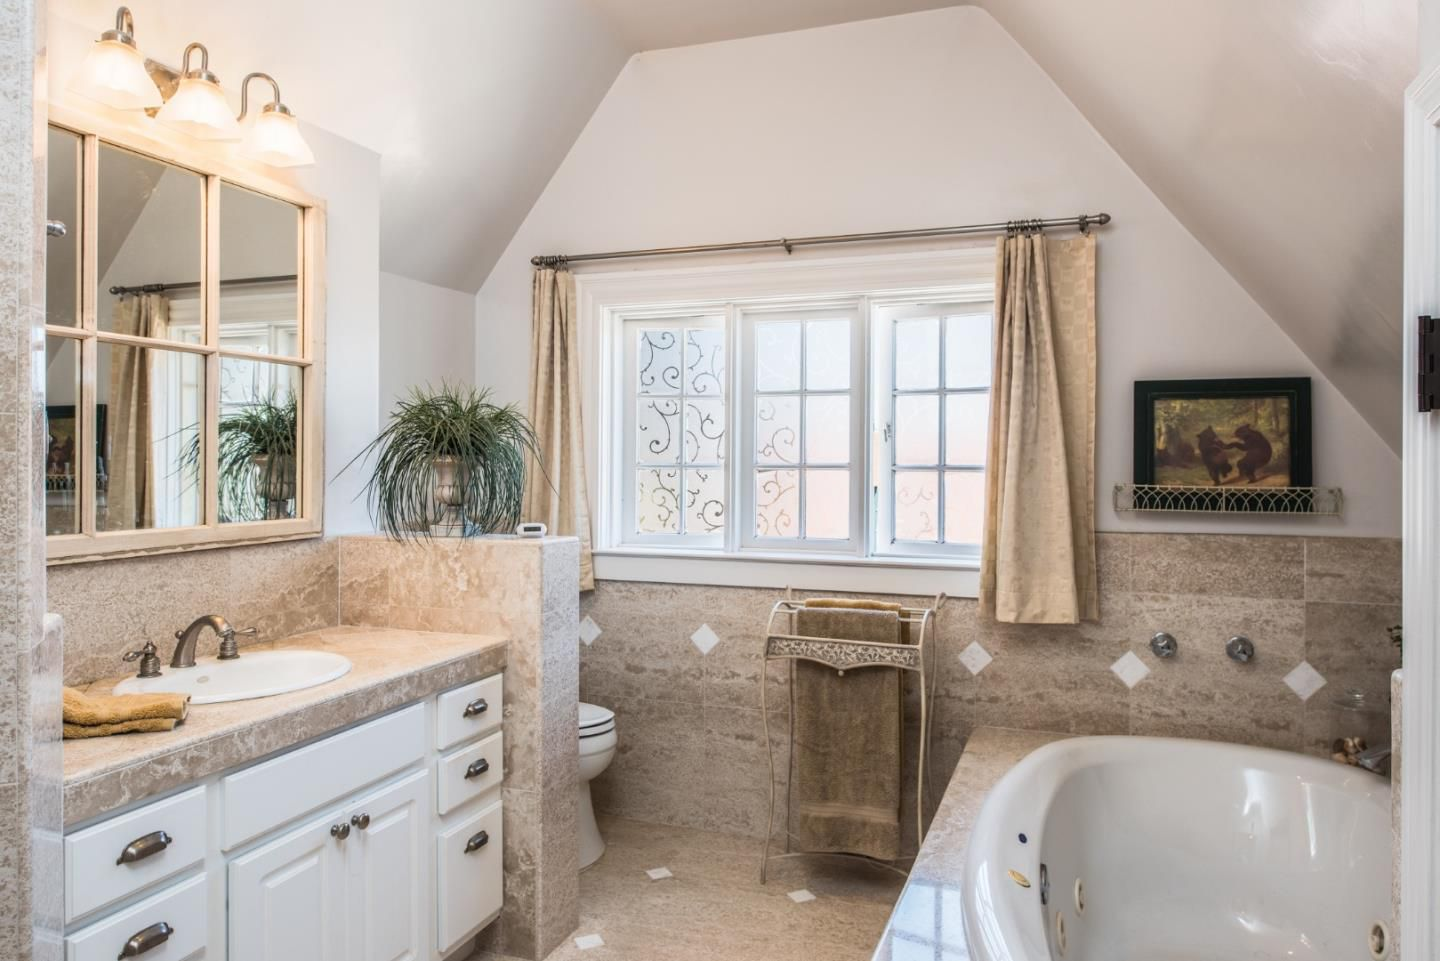 950 14th St, Pacific Grove, CA for sale in Candy Cane Lane neighborhood - cottage style master bath